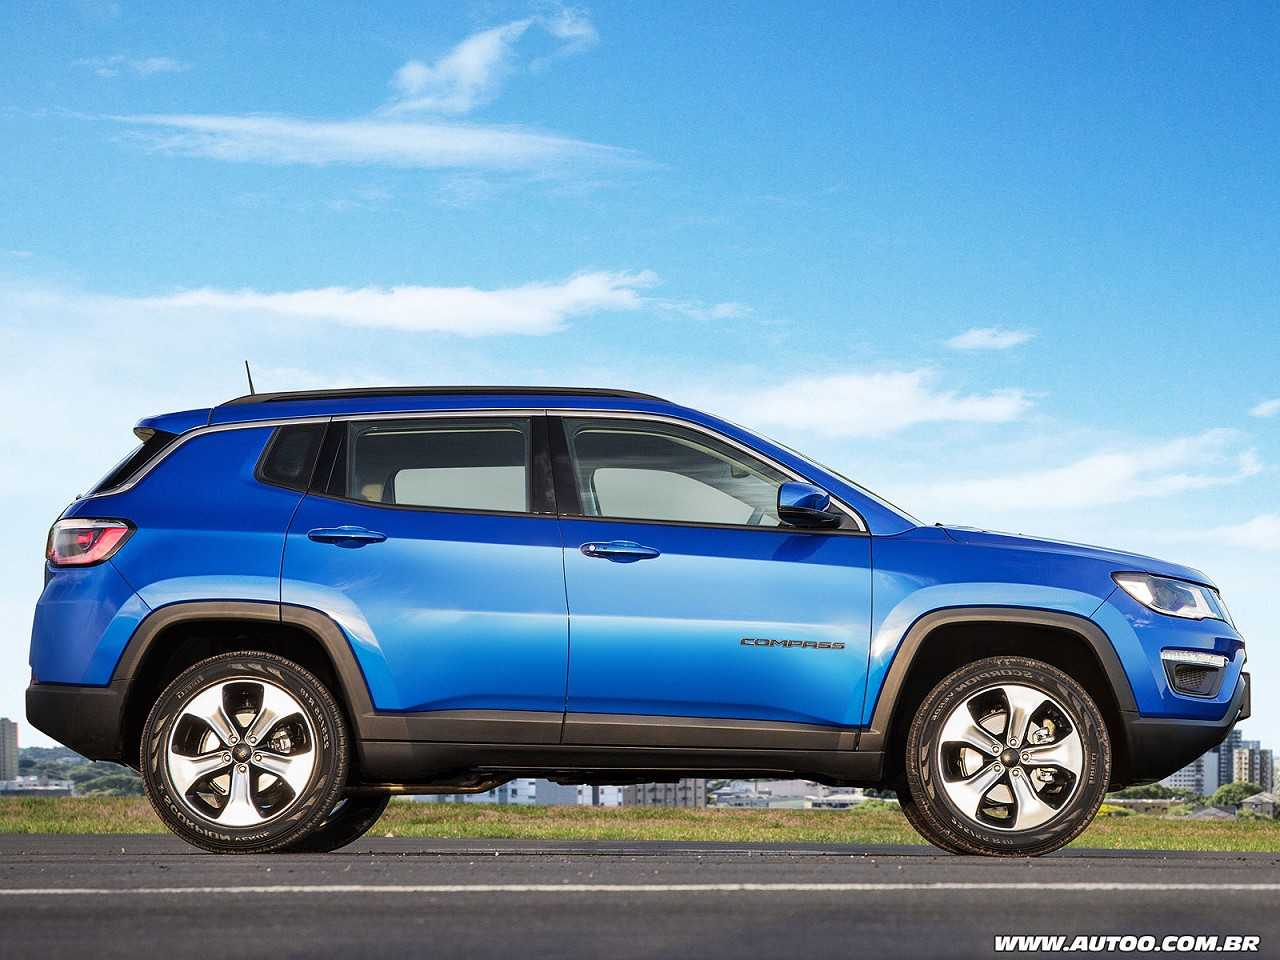 JeepCompass 2017 - lateral